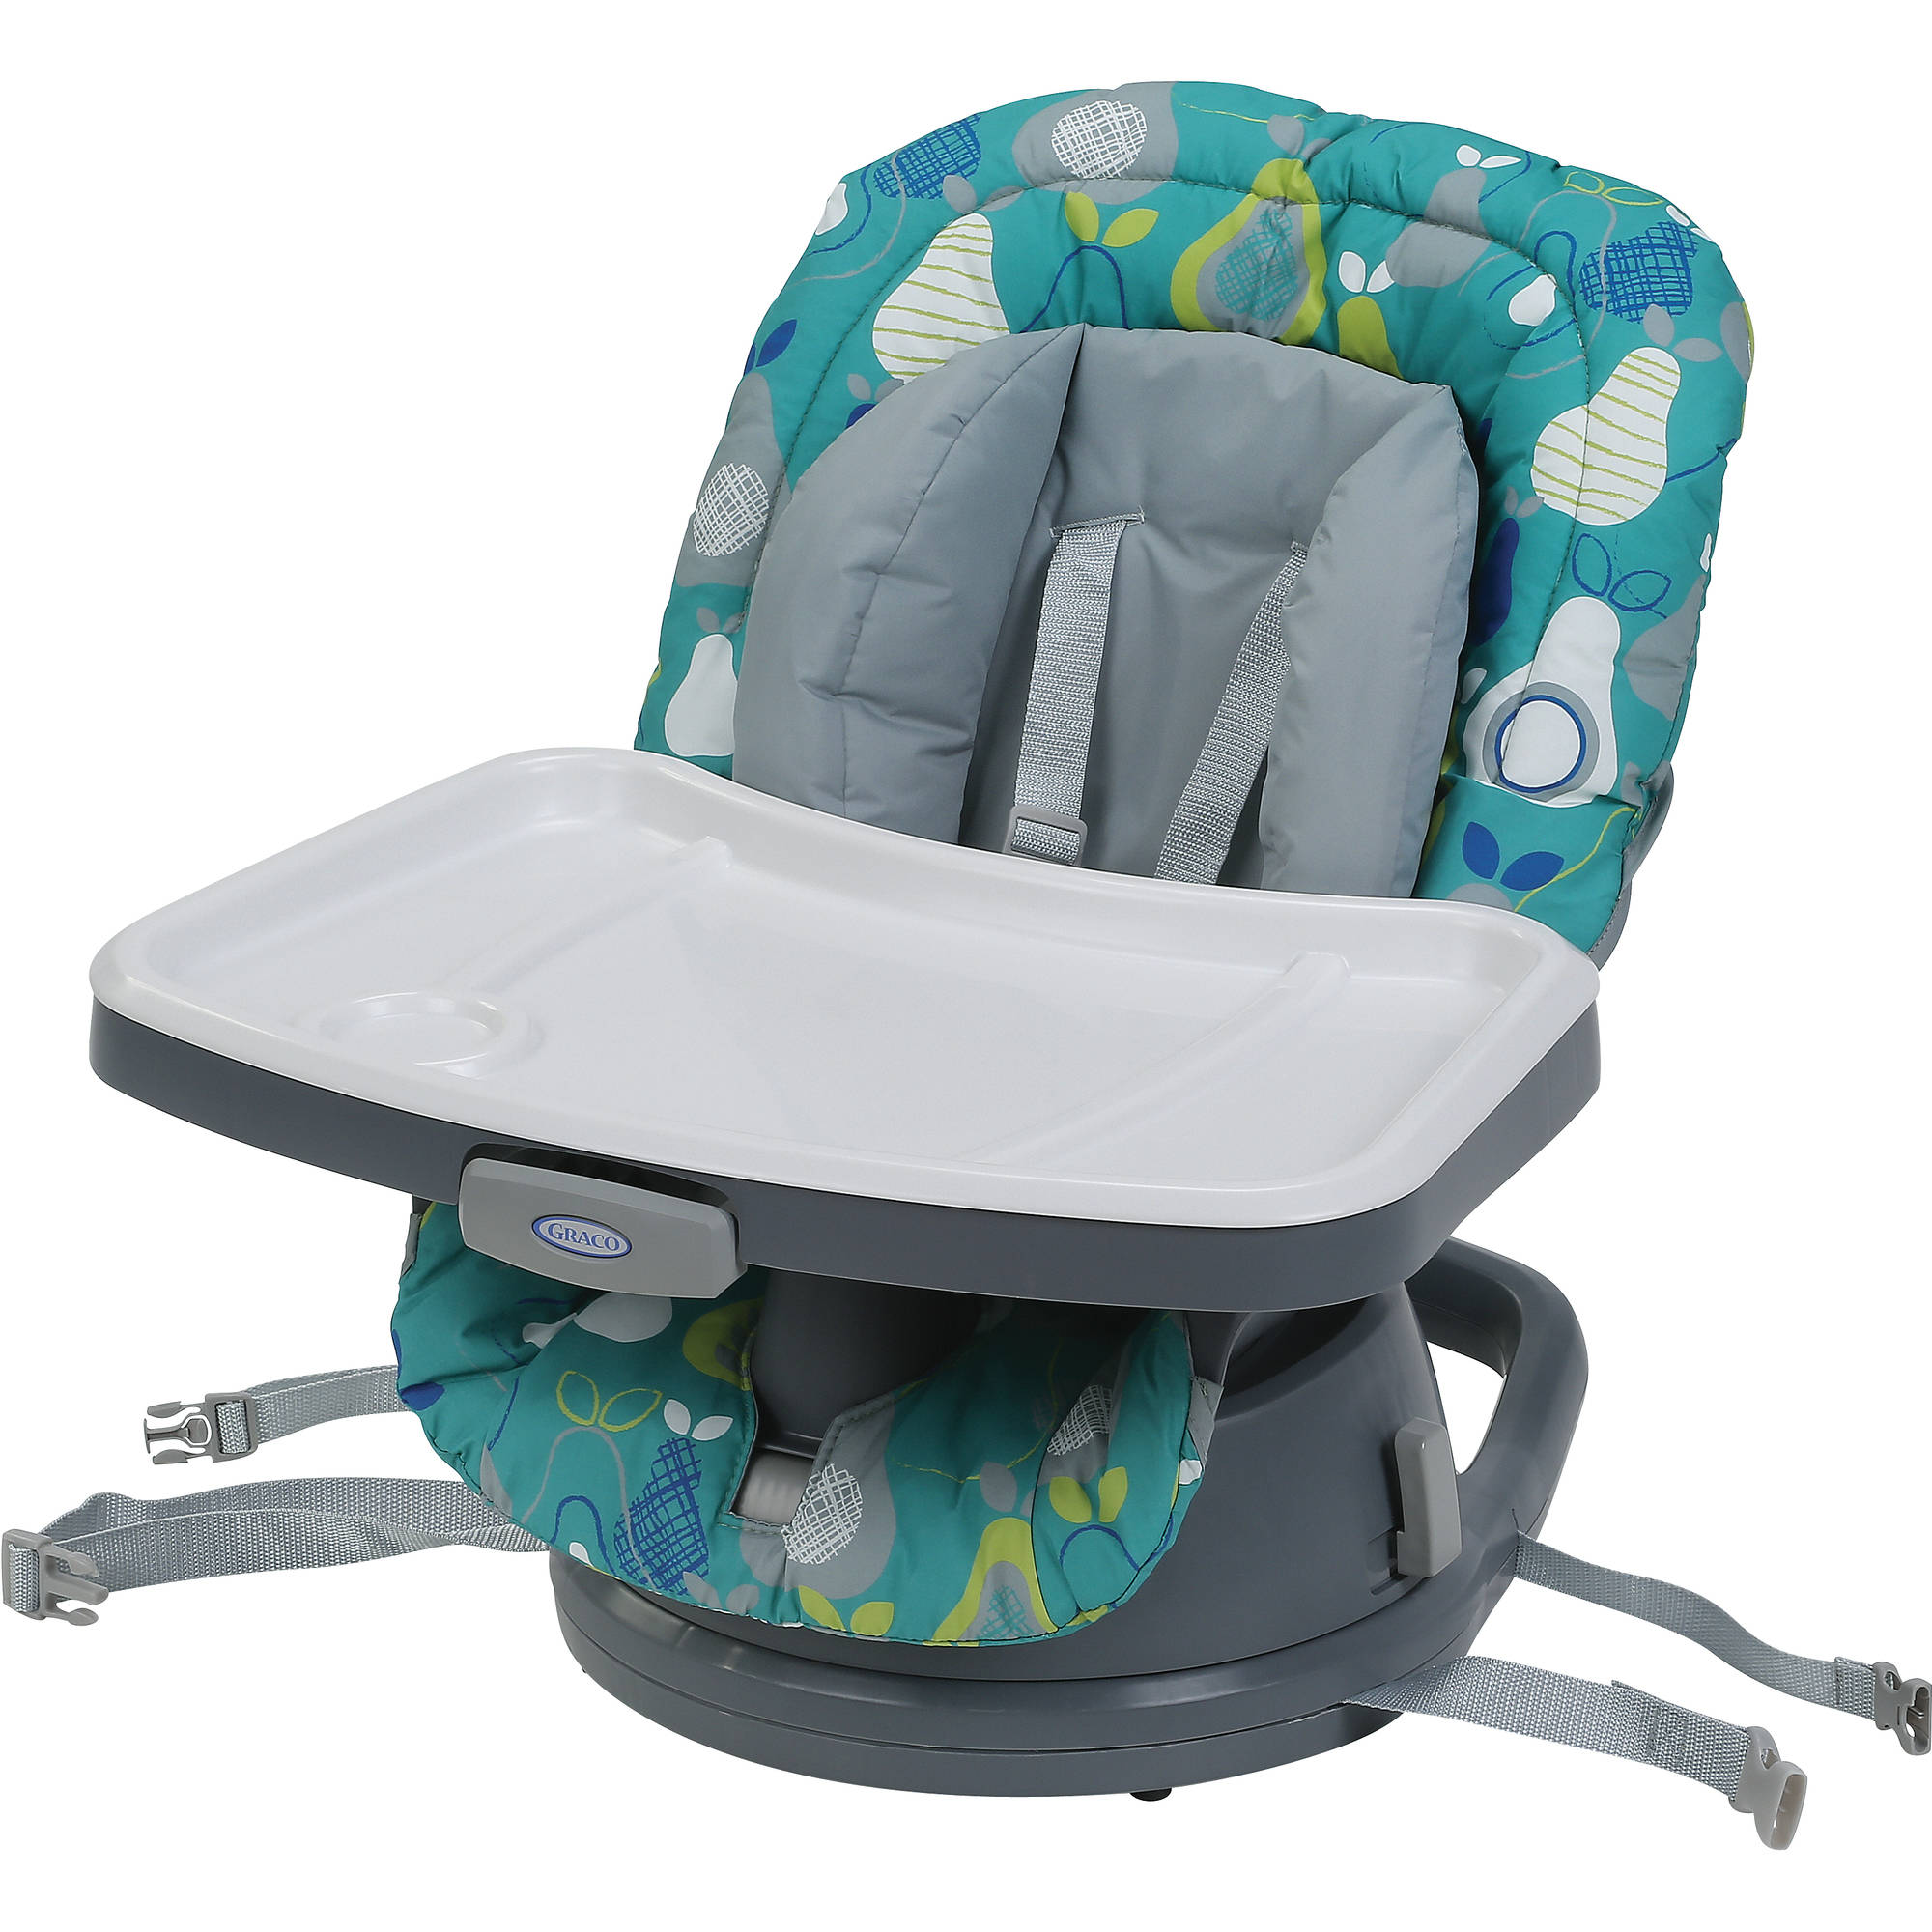 Ordinaire Graco SwiviSeat 3 In 1 High Chair Booster Seat, Tarte